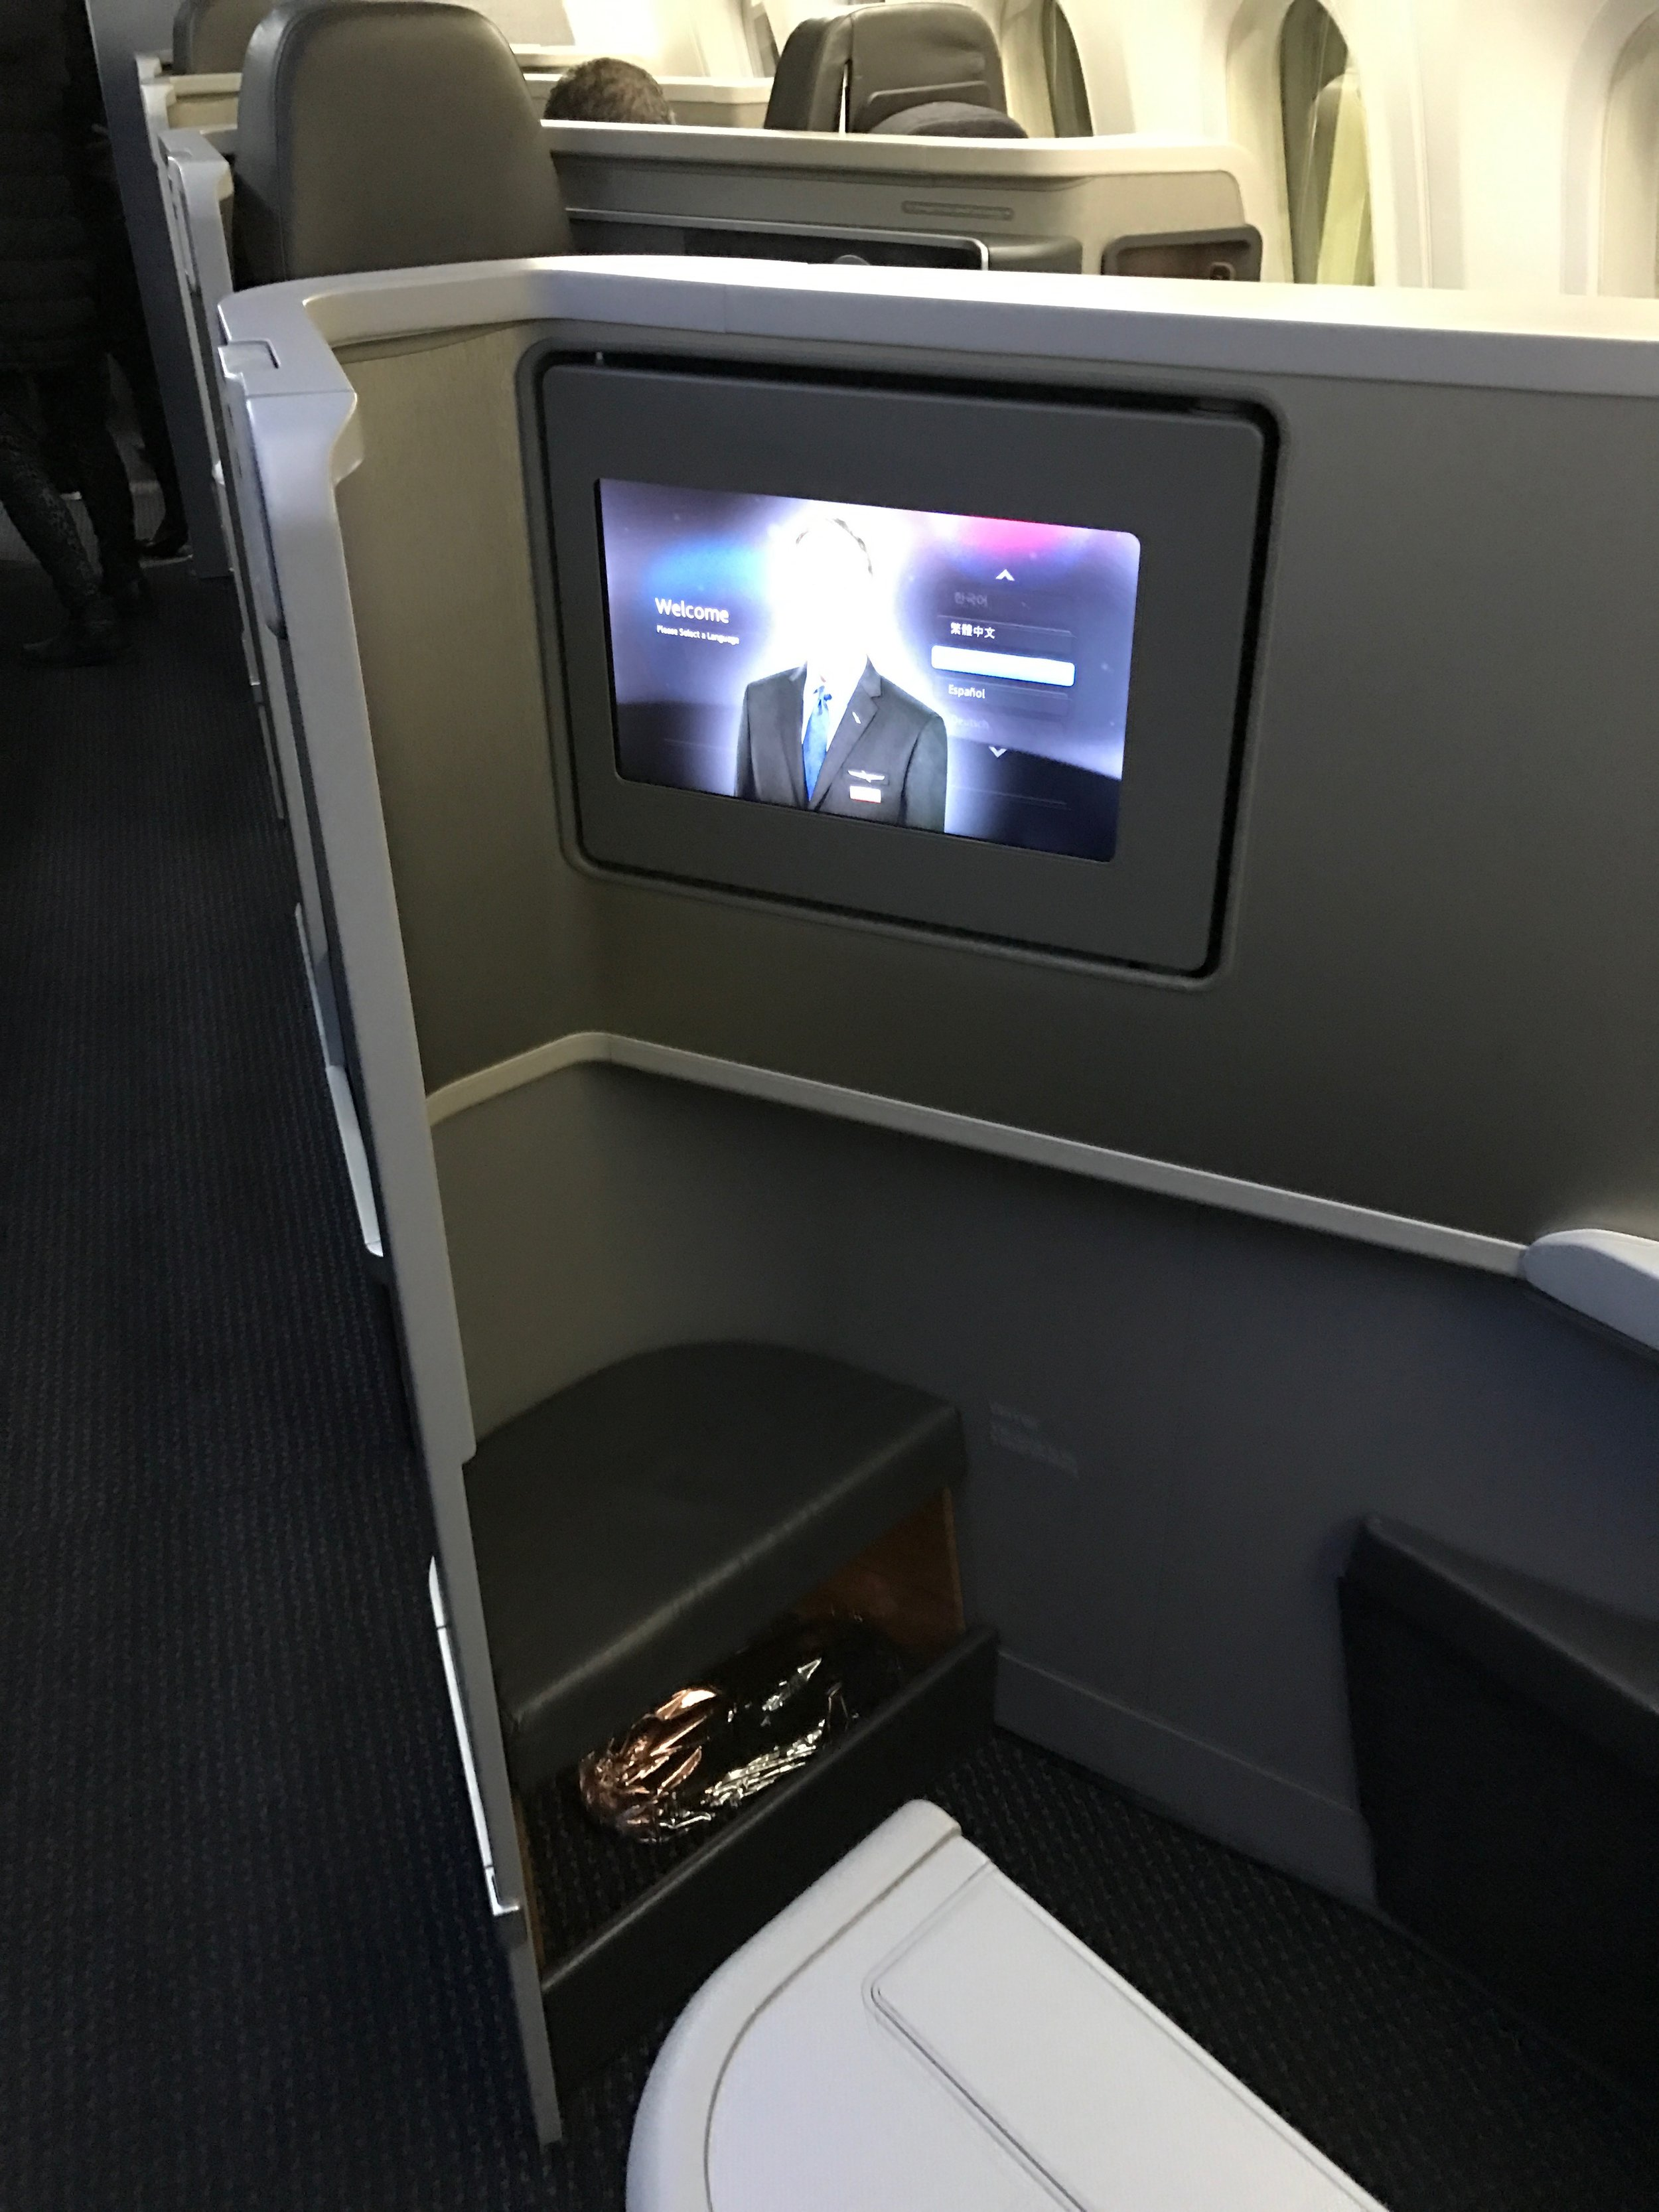 AA 787 Dreamliner Business Class rear-facing seat footrest and monitor